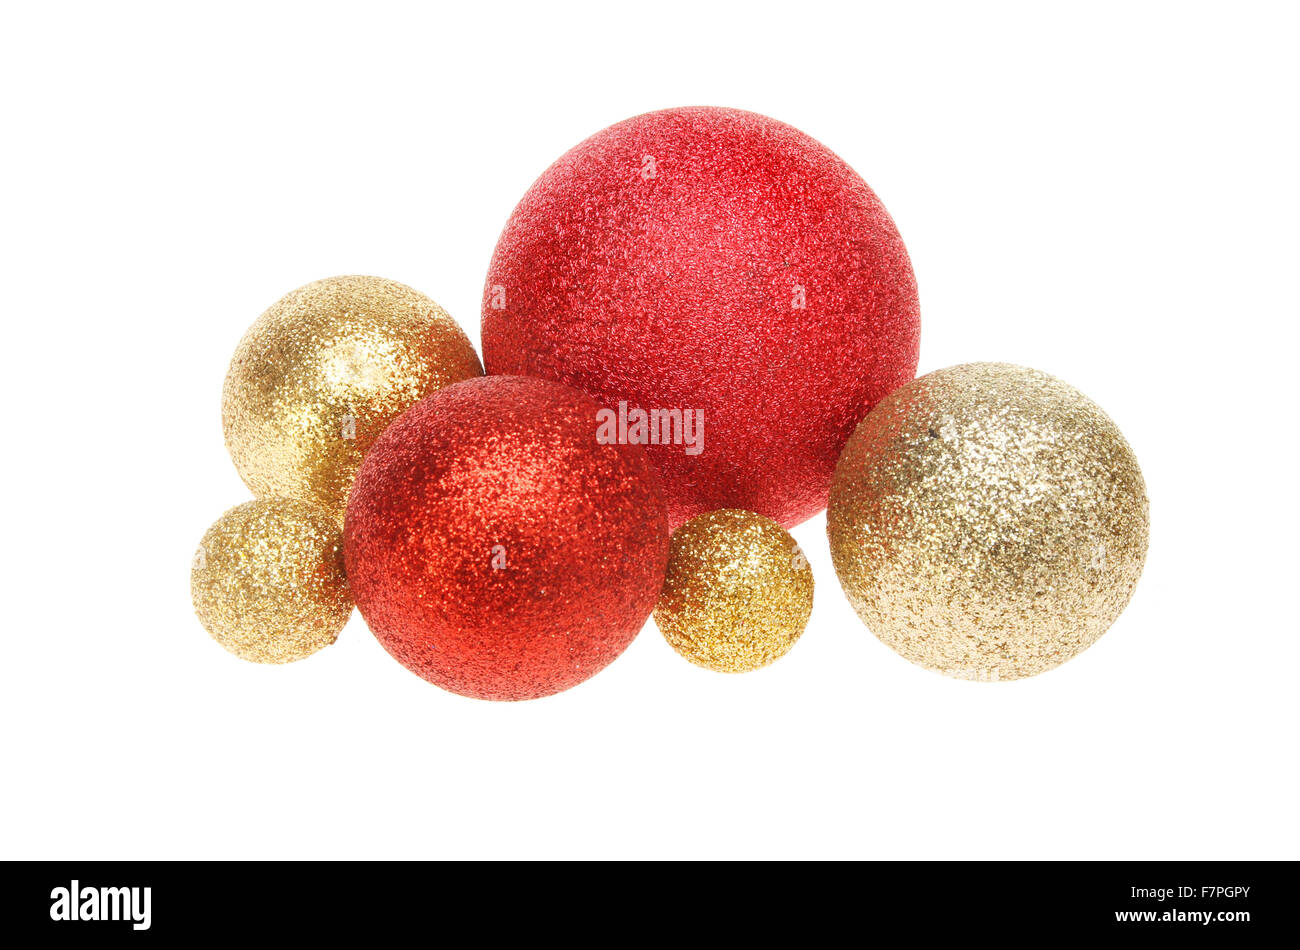 ce3e3fcdd9c0 Group of red and gold glitter Christmas baubles isolated against white